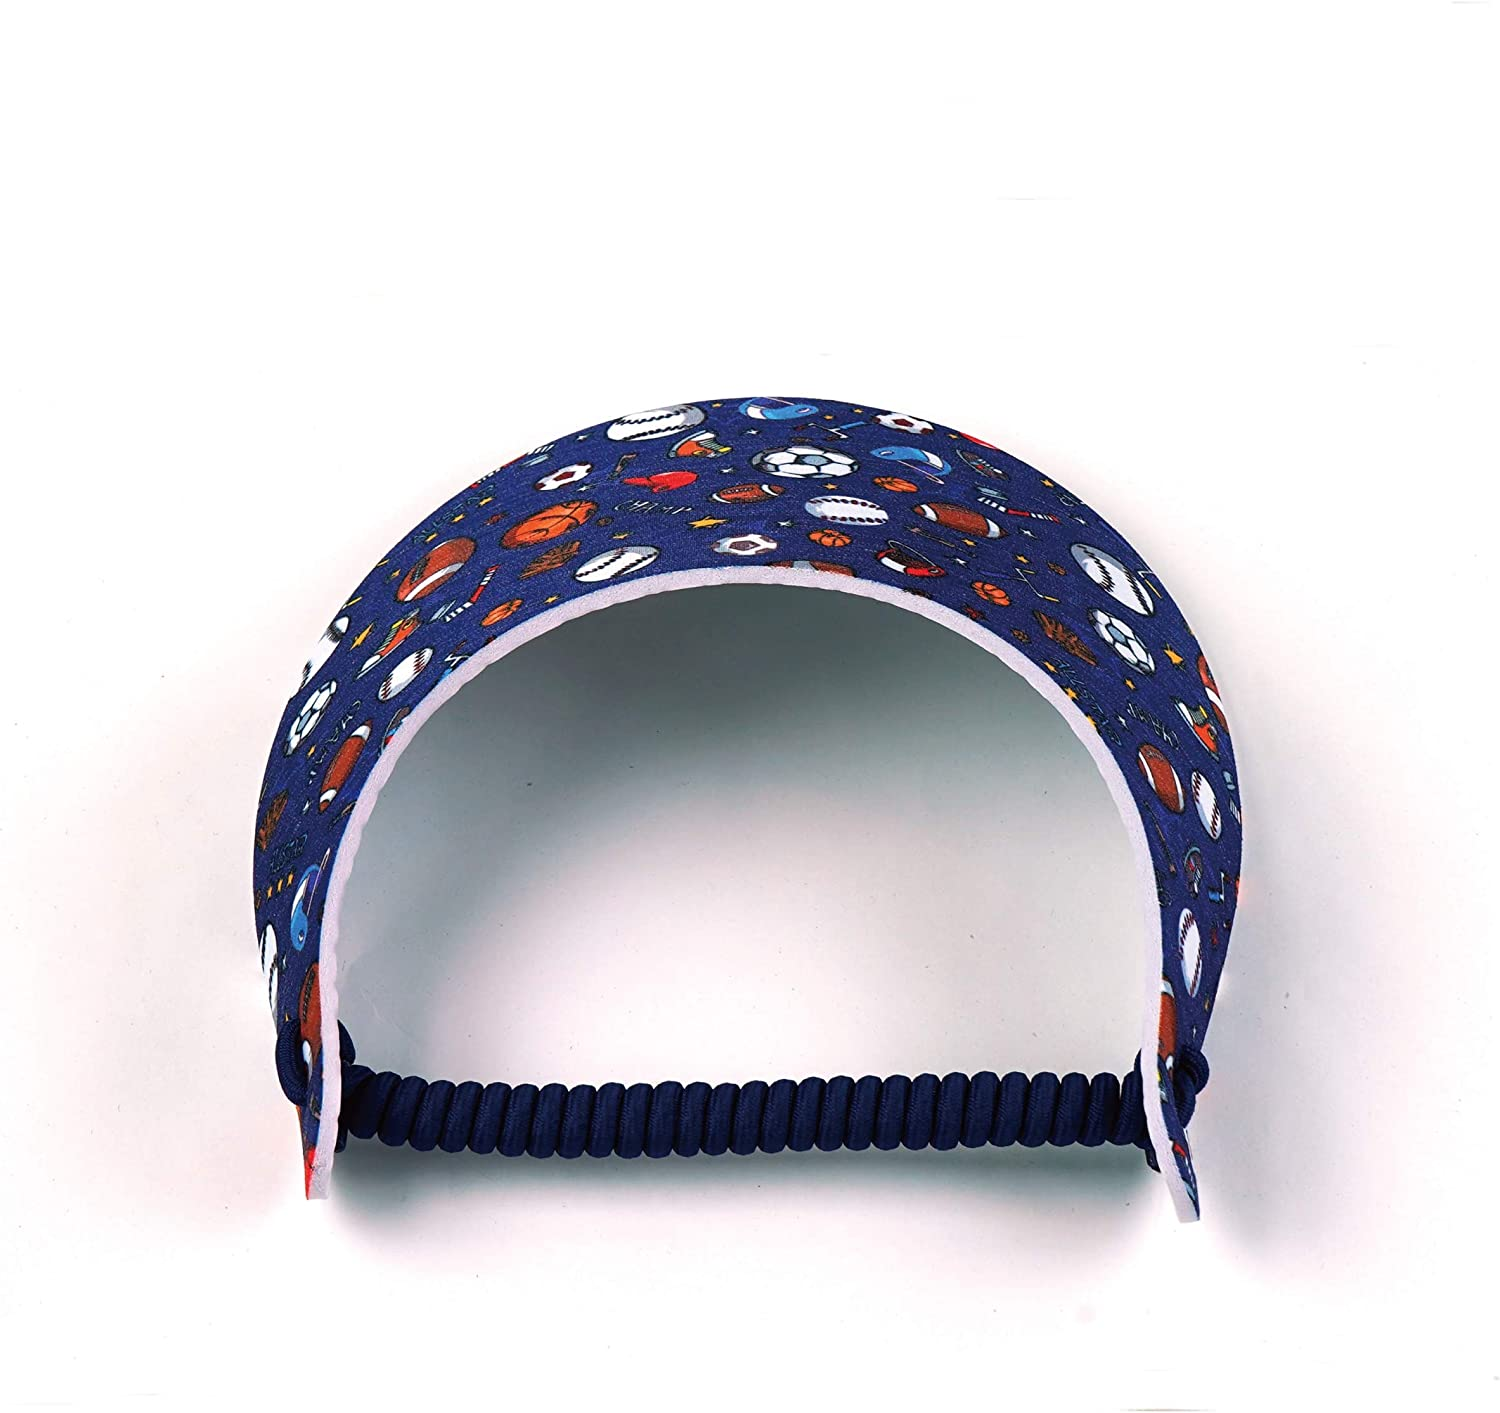 Adjustable to Any Size with No Pressure /& No Headache Sunny Side Roll-up Sun Visor String Hat Perfect for Summer